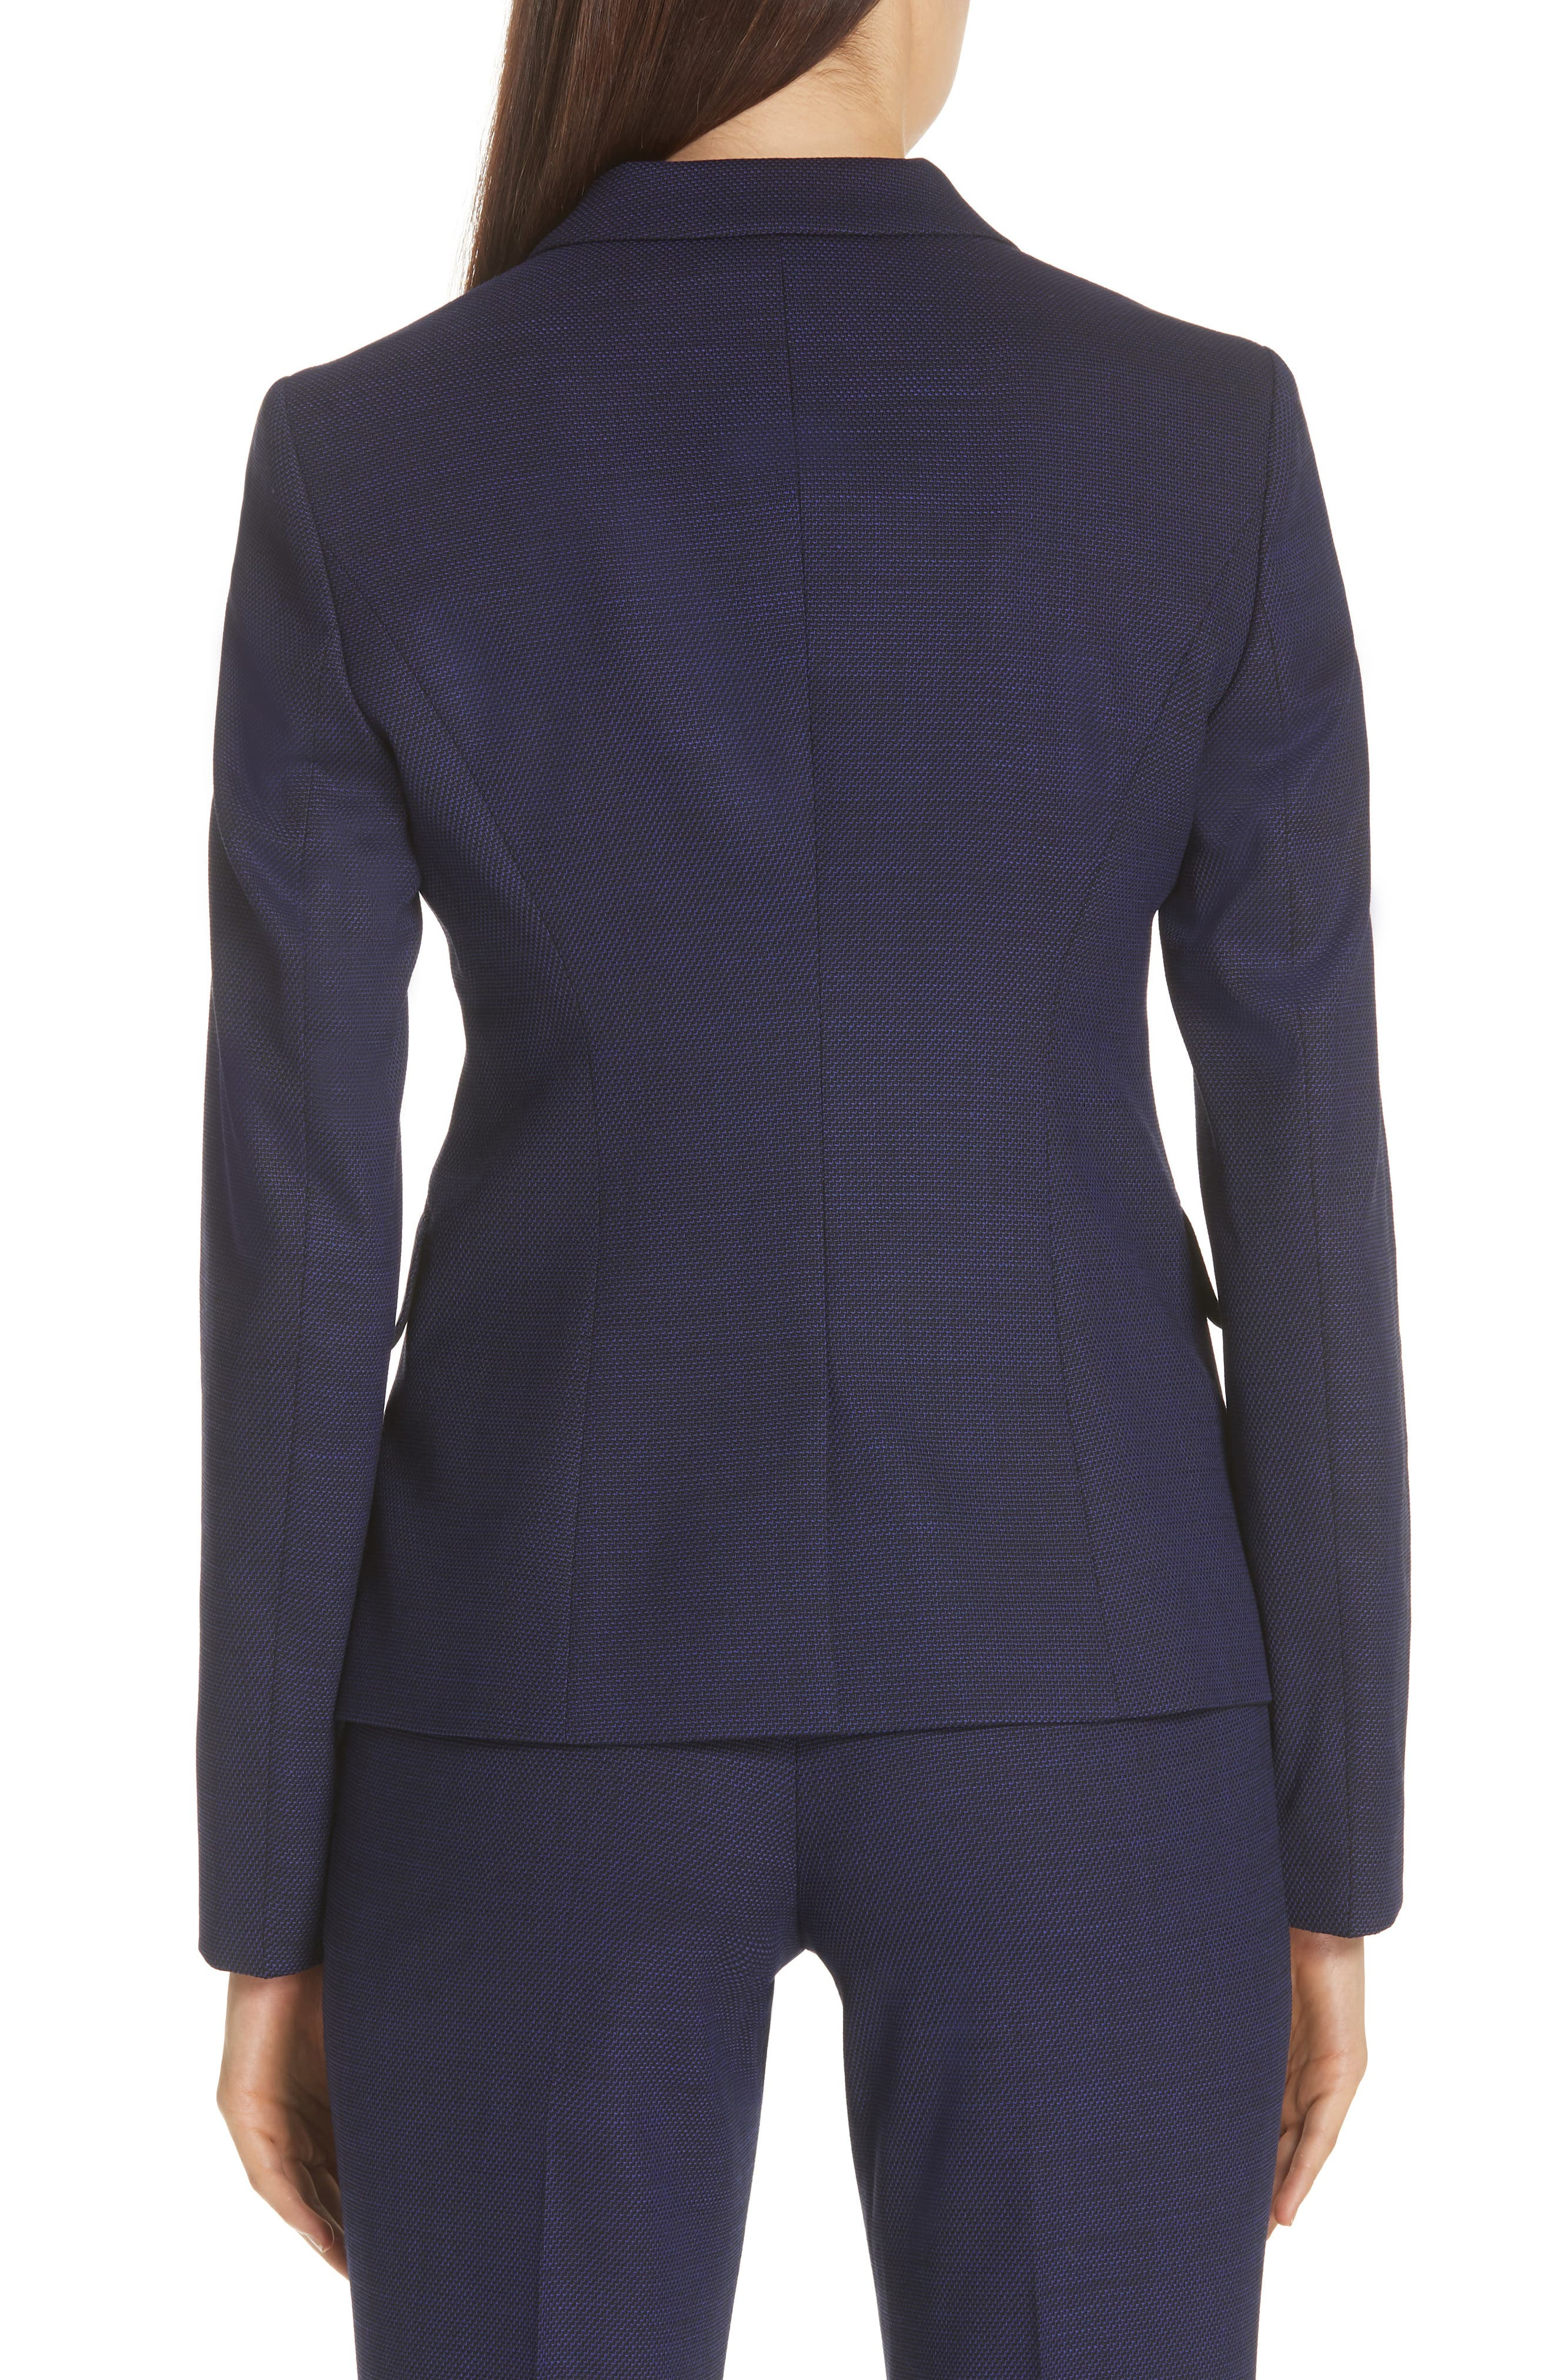 Jibalena Mini Glencheck Suit Jacket,                             Alternate thumbnail 2, color,                             Deep Lilac Fantasy